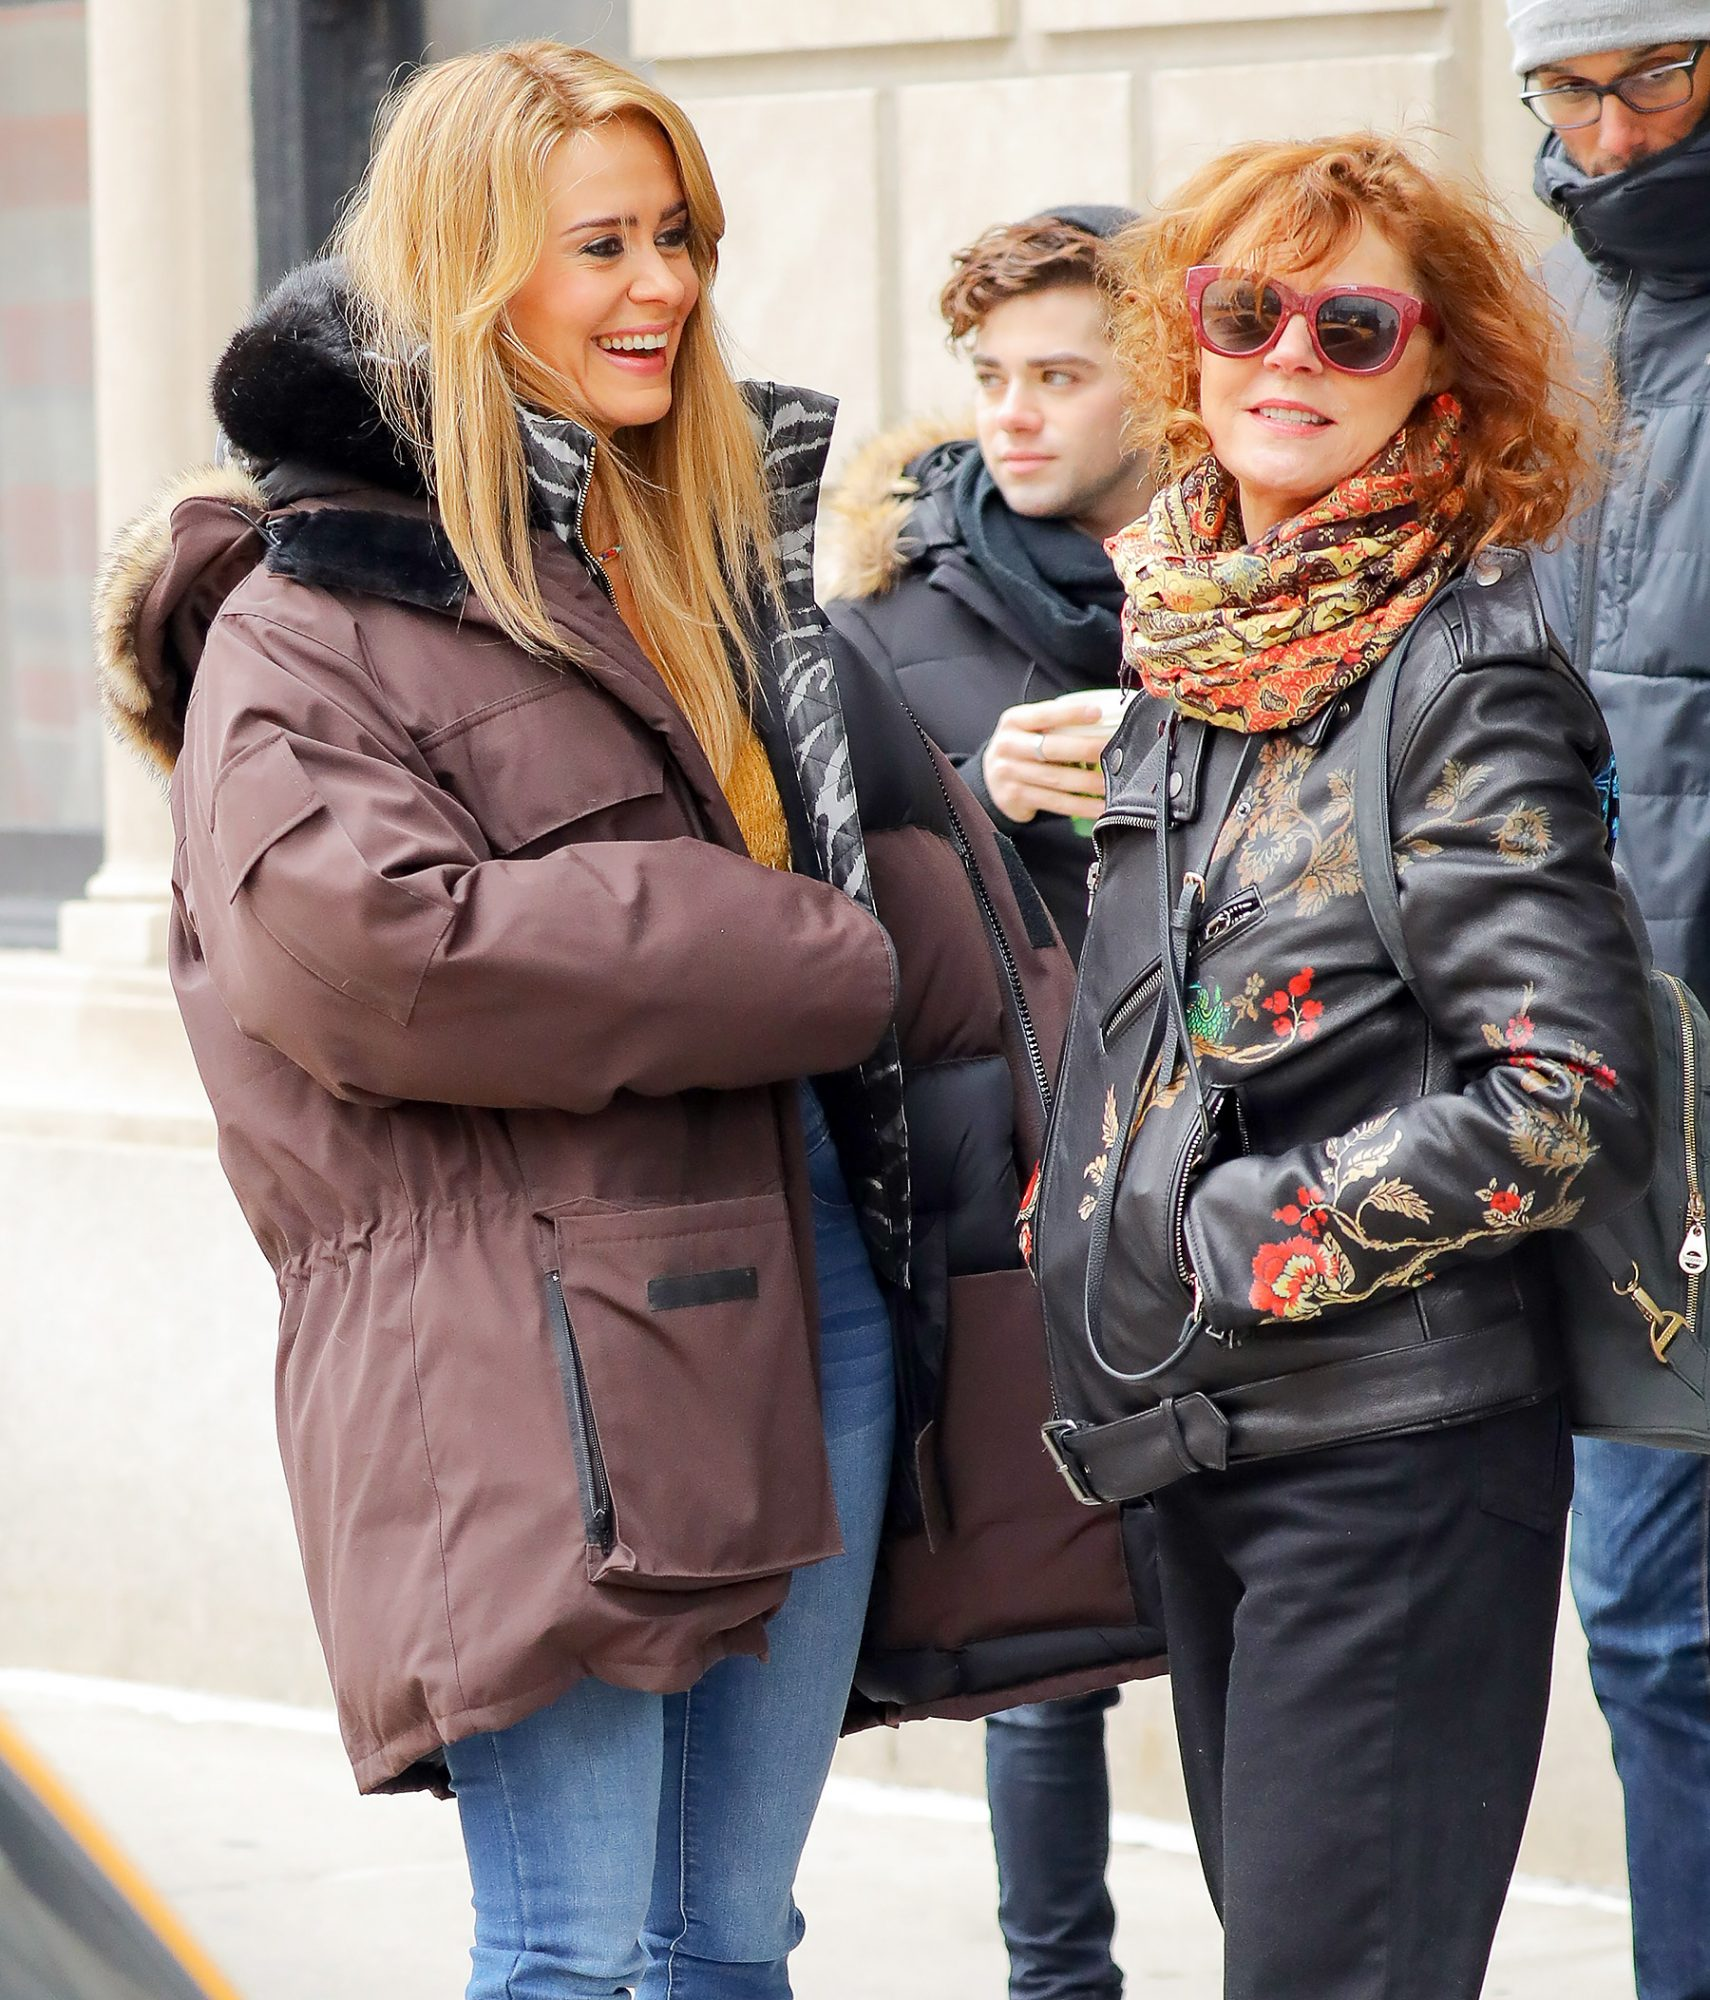 Sarah Paulson and Susan Sarandon chat during a break of 'The Goldfinch' in New York City